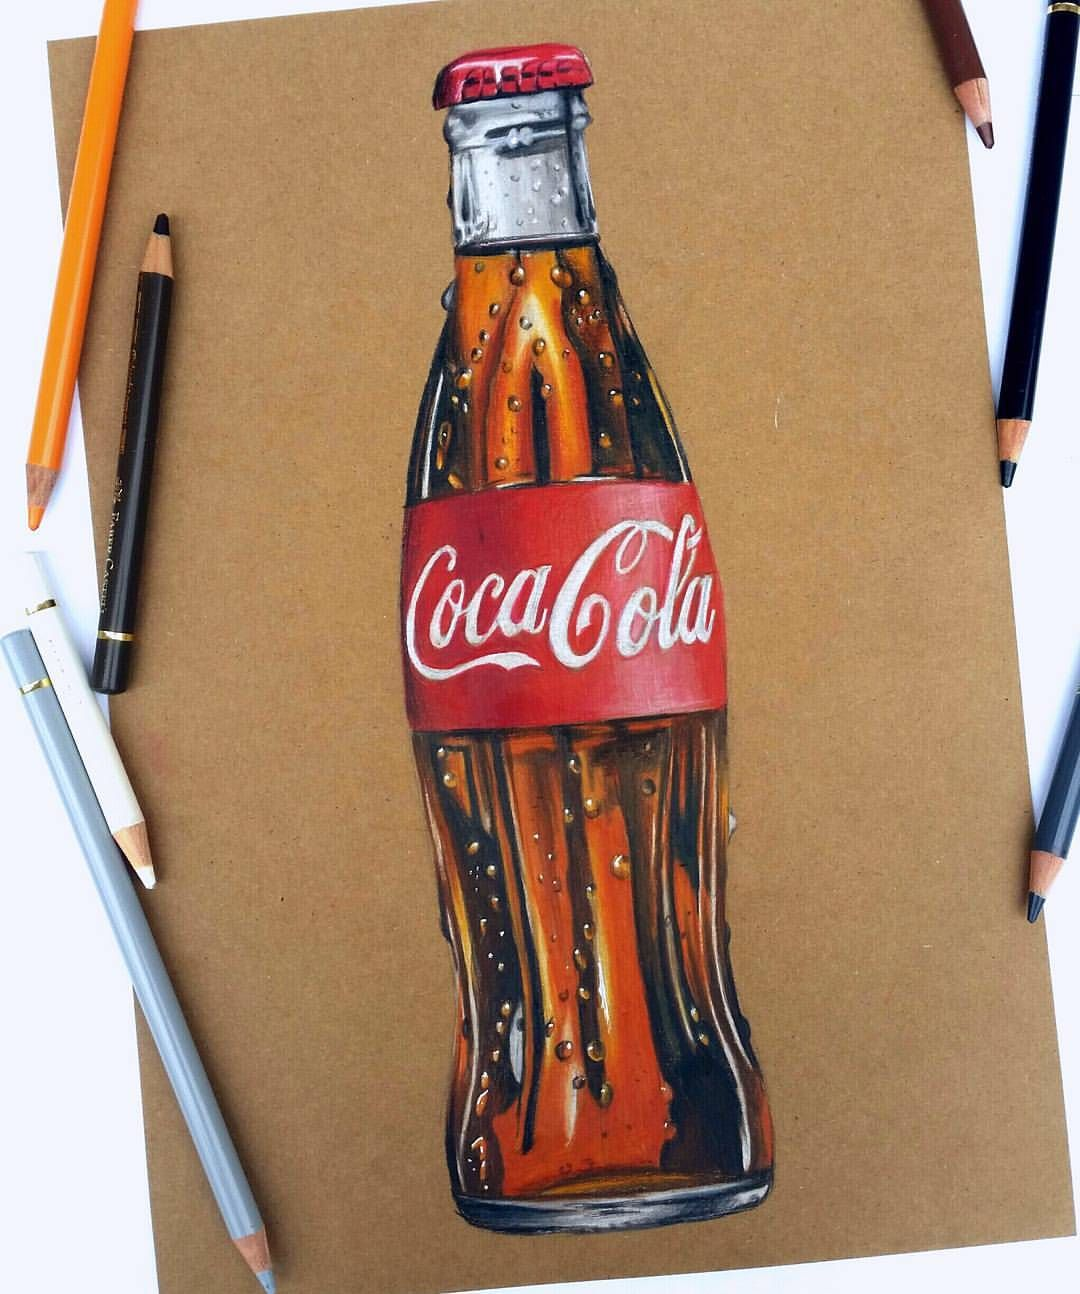 "Nahinart on Instagram: ""Finished coke bottle . . For this drawing I used Faber Castell Polychromo coloured pencils and Kraftstax Kraftpapier 280g/m2 . . .…"""